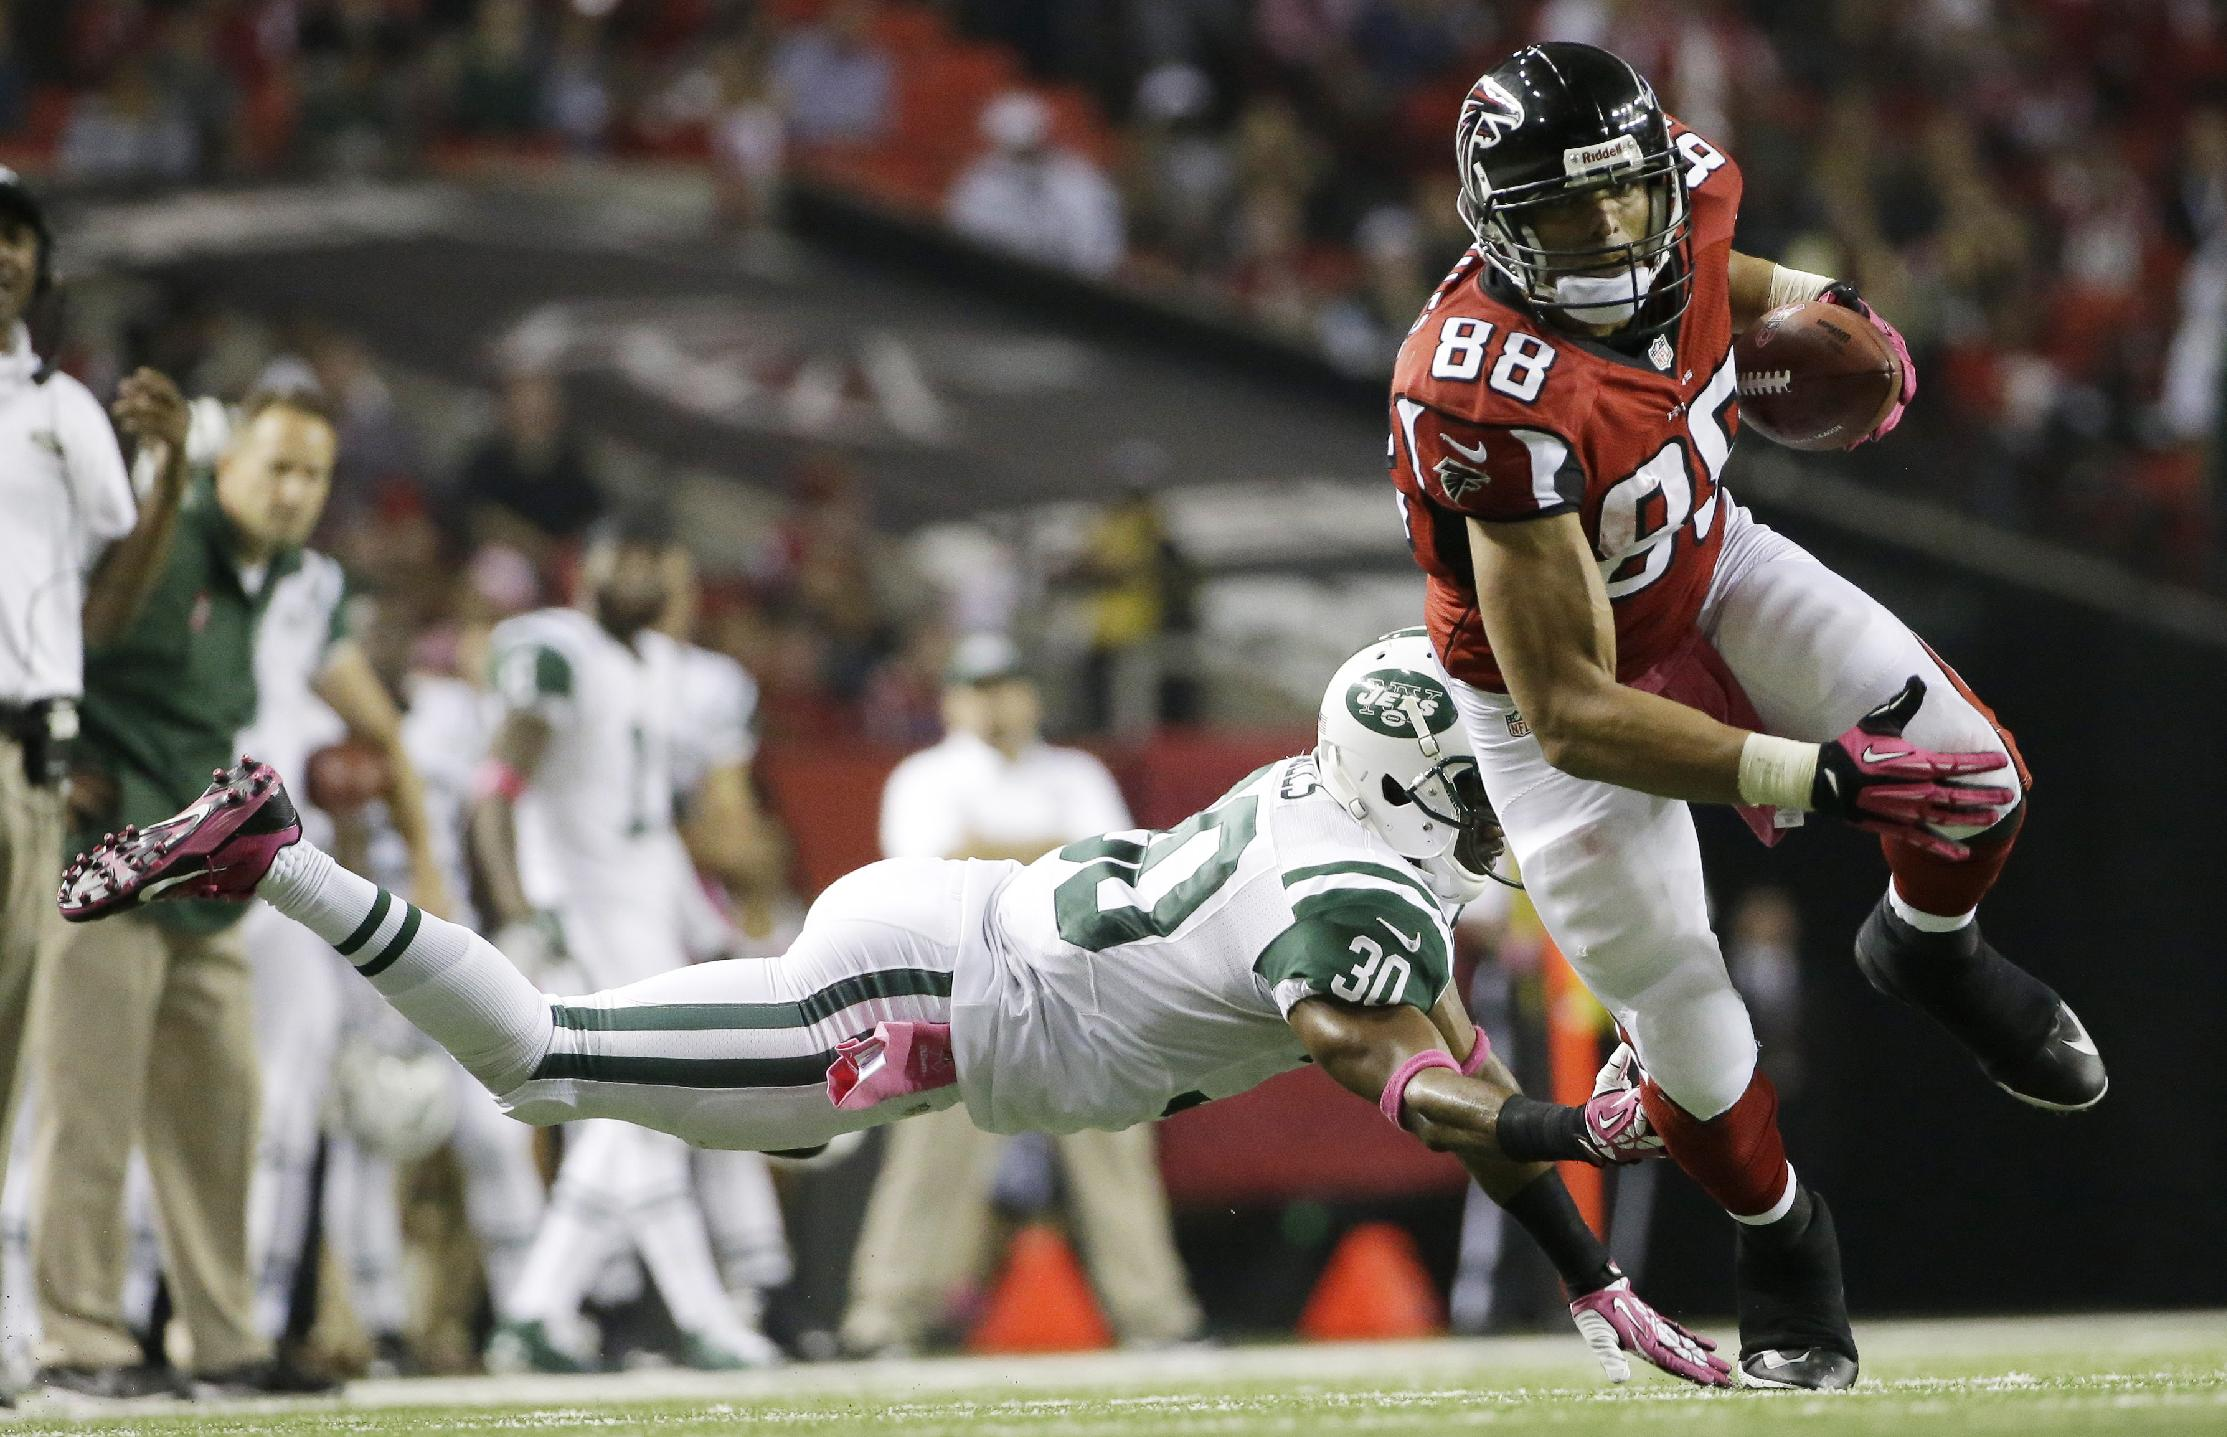 Atlanta Falcons tight end Tony Gonzalez (88) moves the ball after a catch as New York Jets cornerback Darrin Walls (30) defends during the second half of an NFL football game, Monday, Oct. 7, 2013, in Atlanta